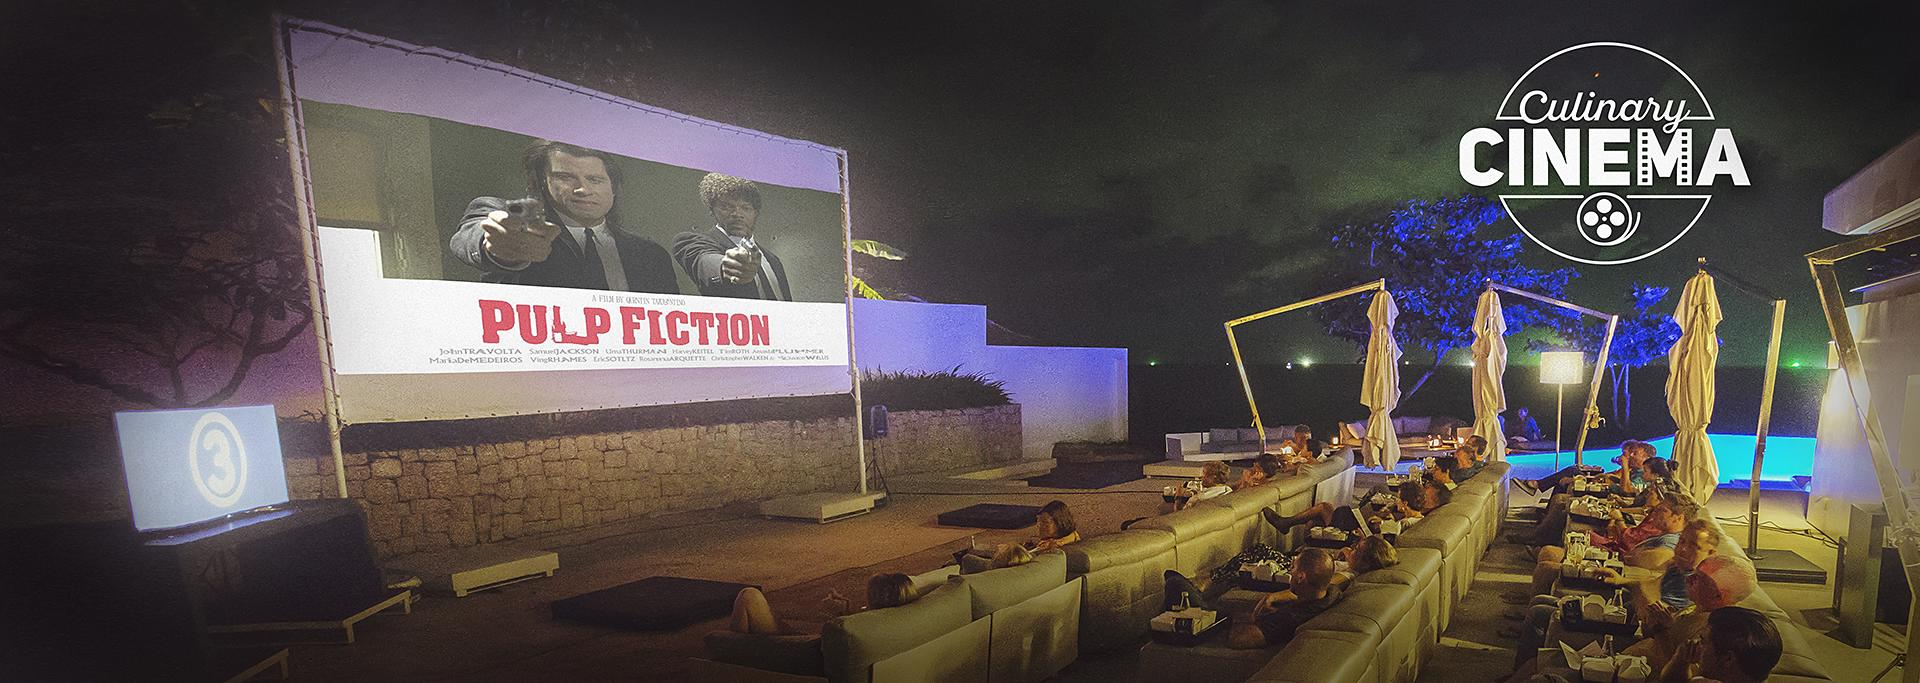 Culinary Cinema Presents 'Pulp Fiction'